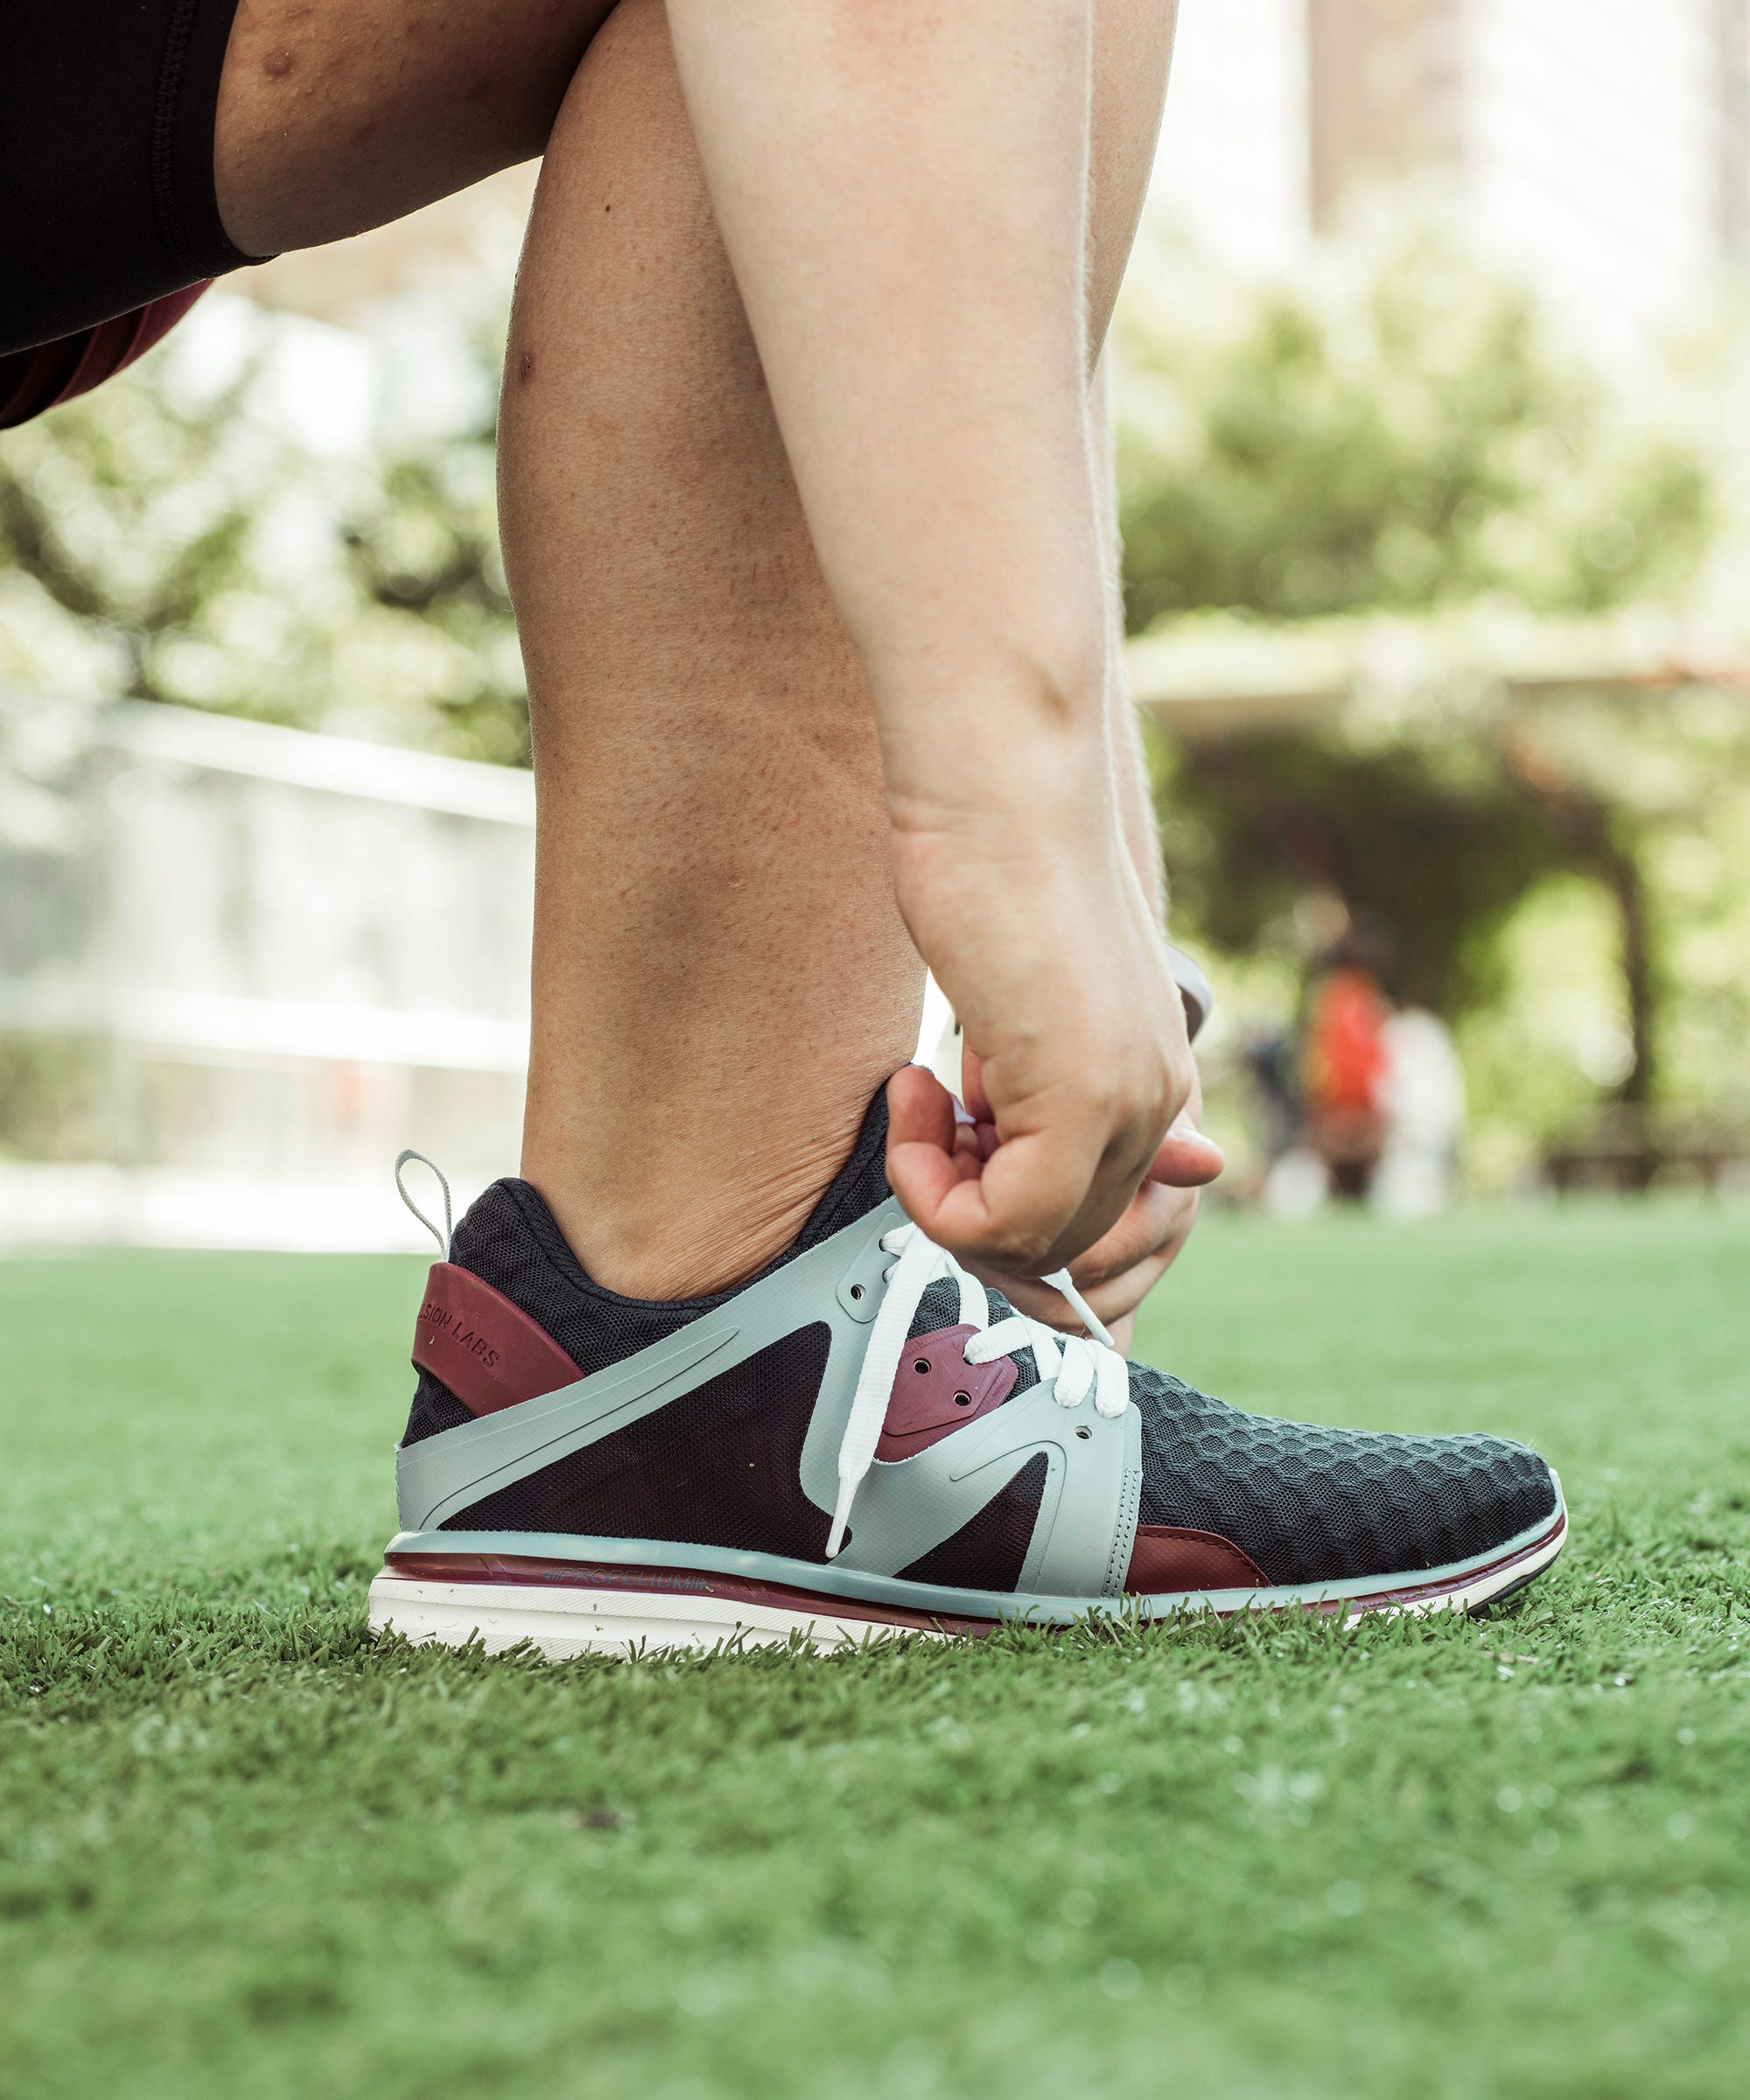 af5ef5a9fdf86 Best Amazon Sneakers 2019: Womens Nike, Adidas & More